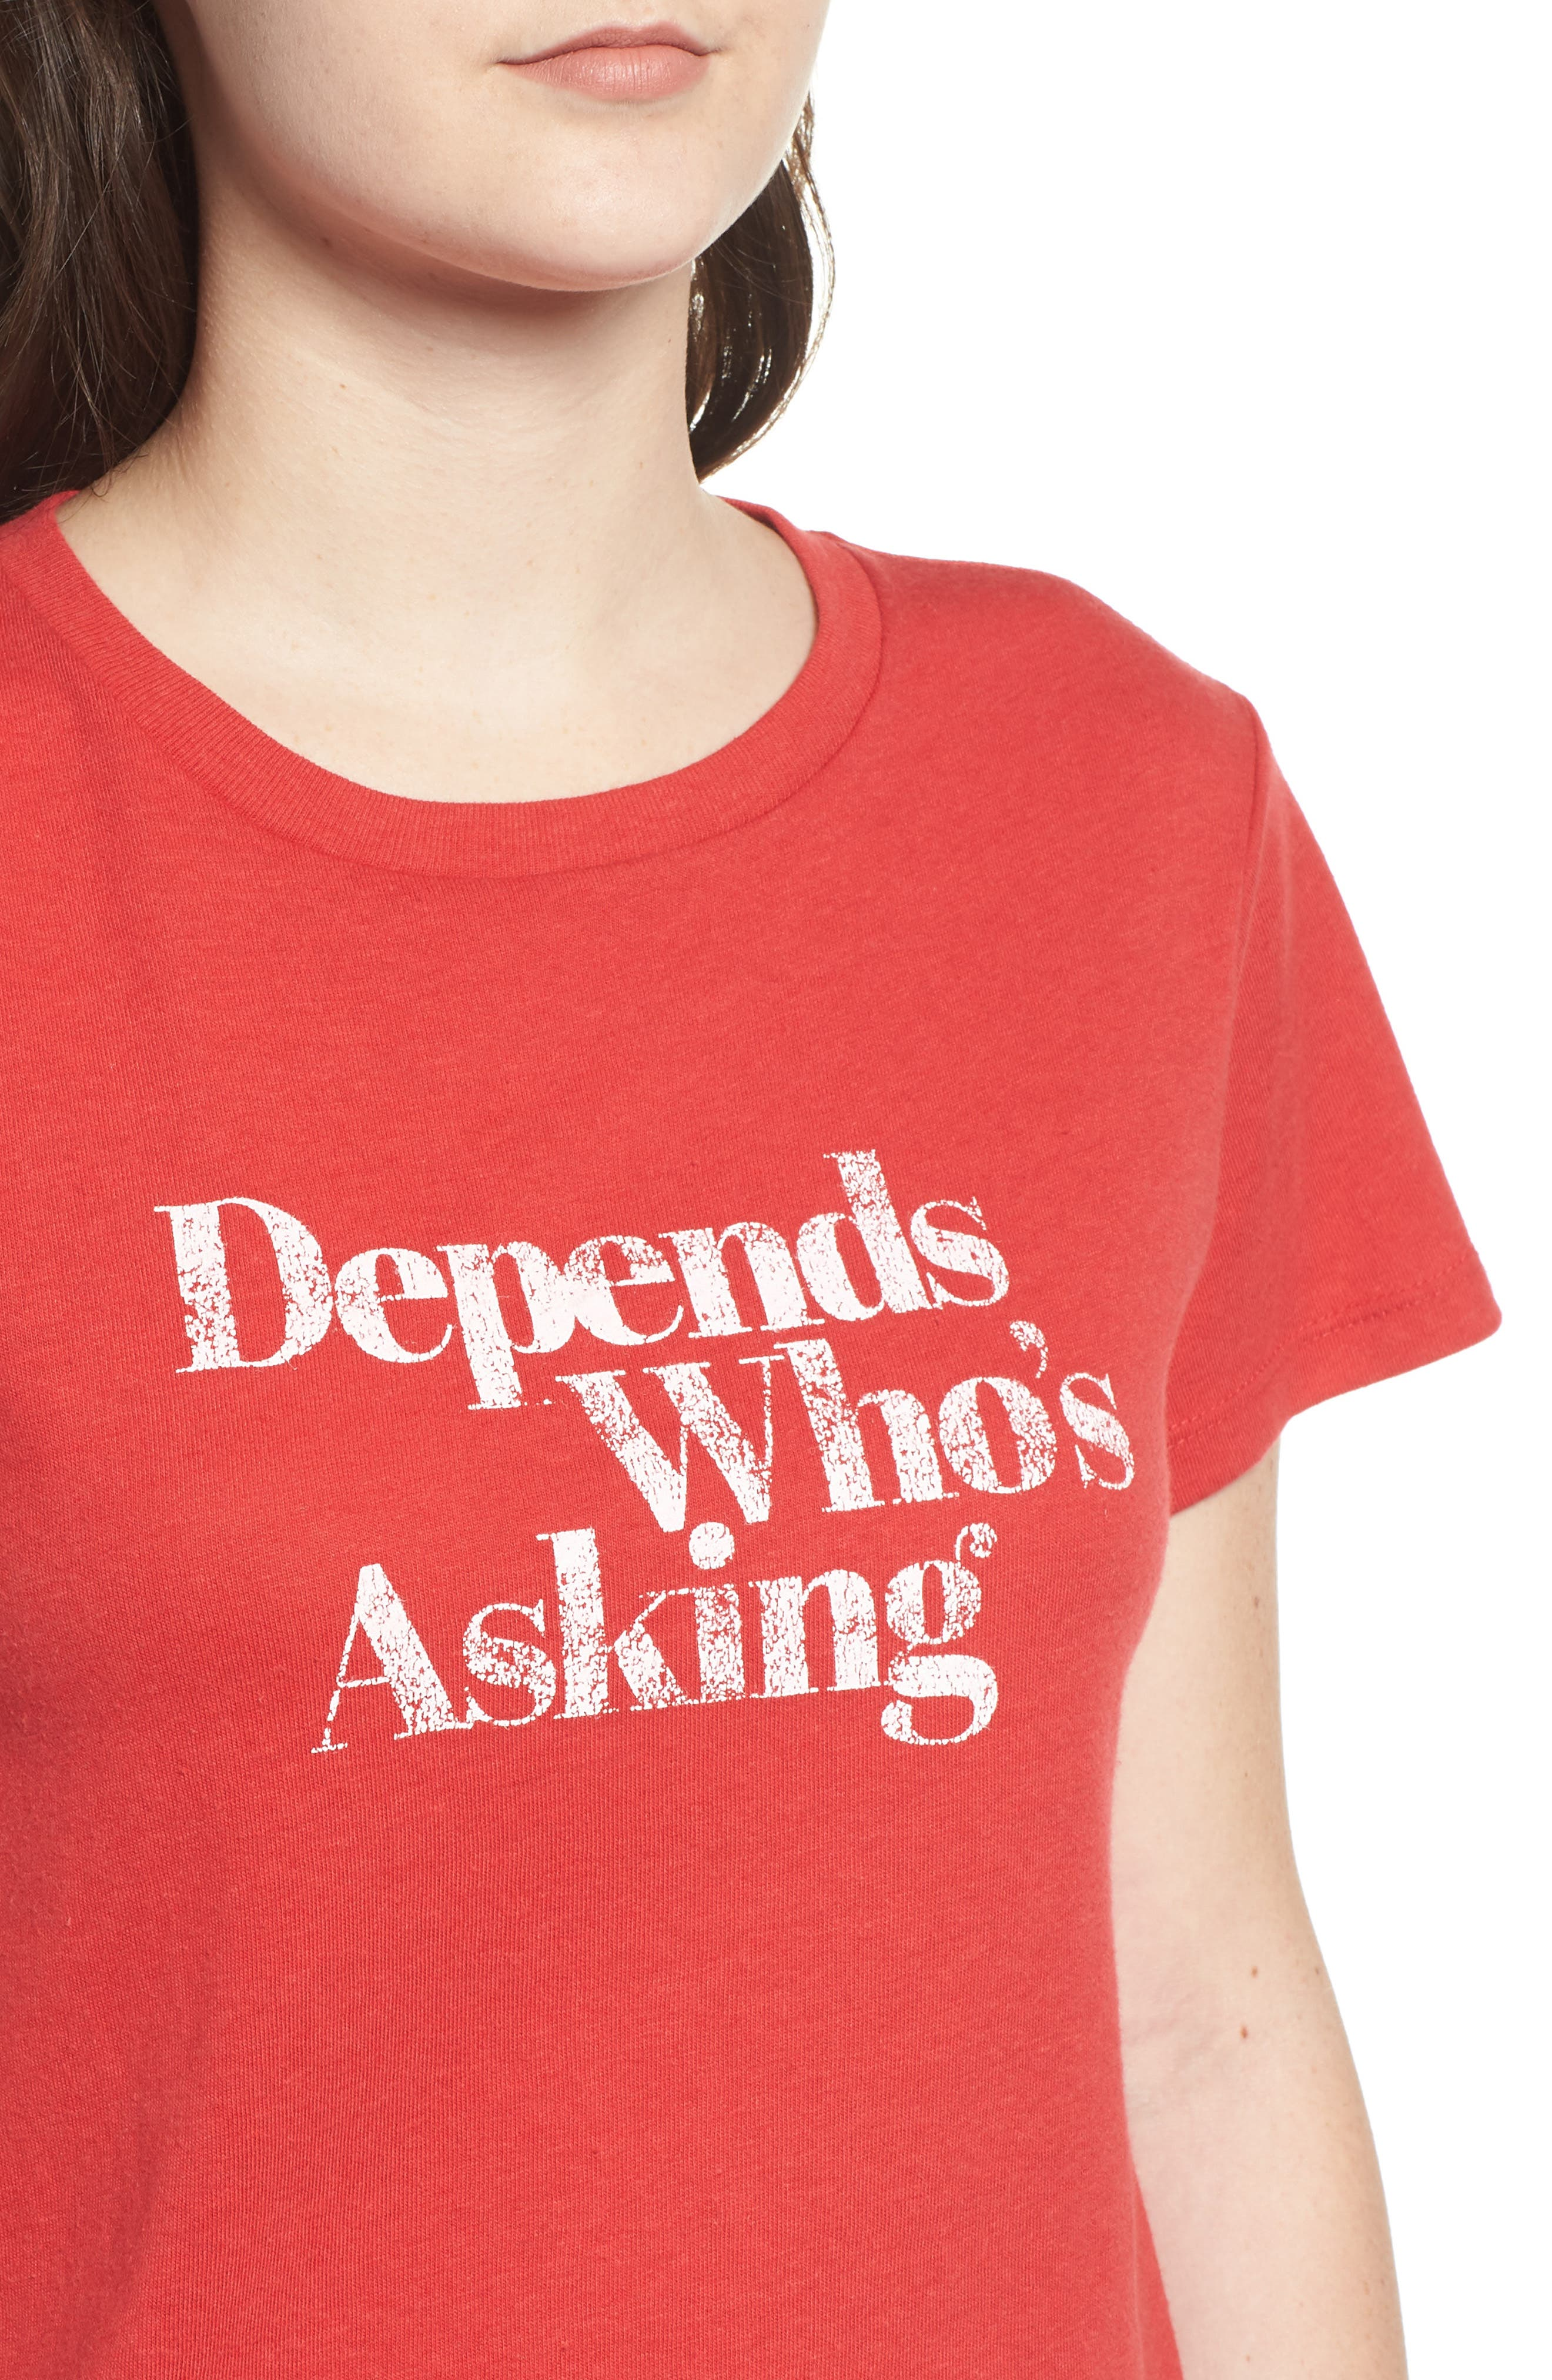 x Erin & Sara Depends Who's Asking Tee,                             Alternate thumbnail 4, color,                             RED